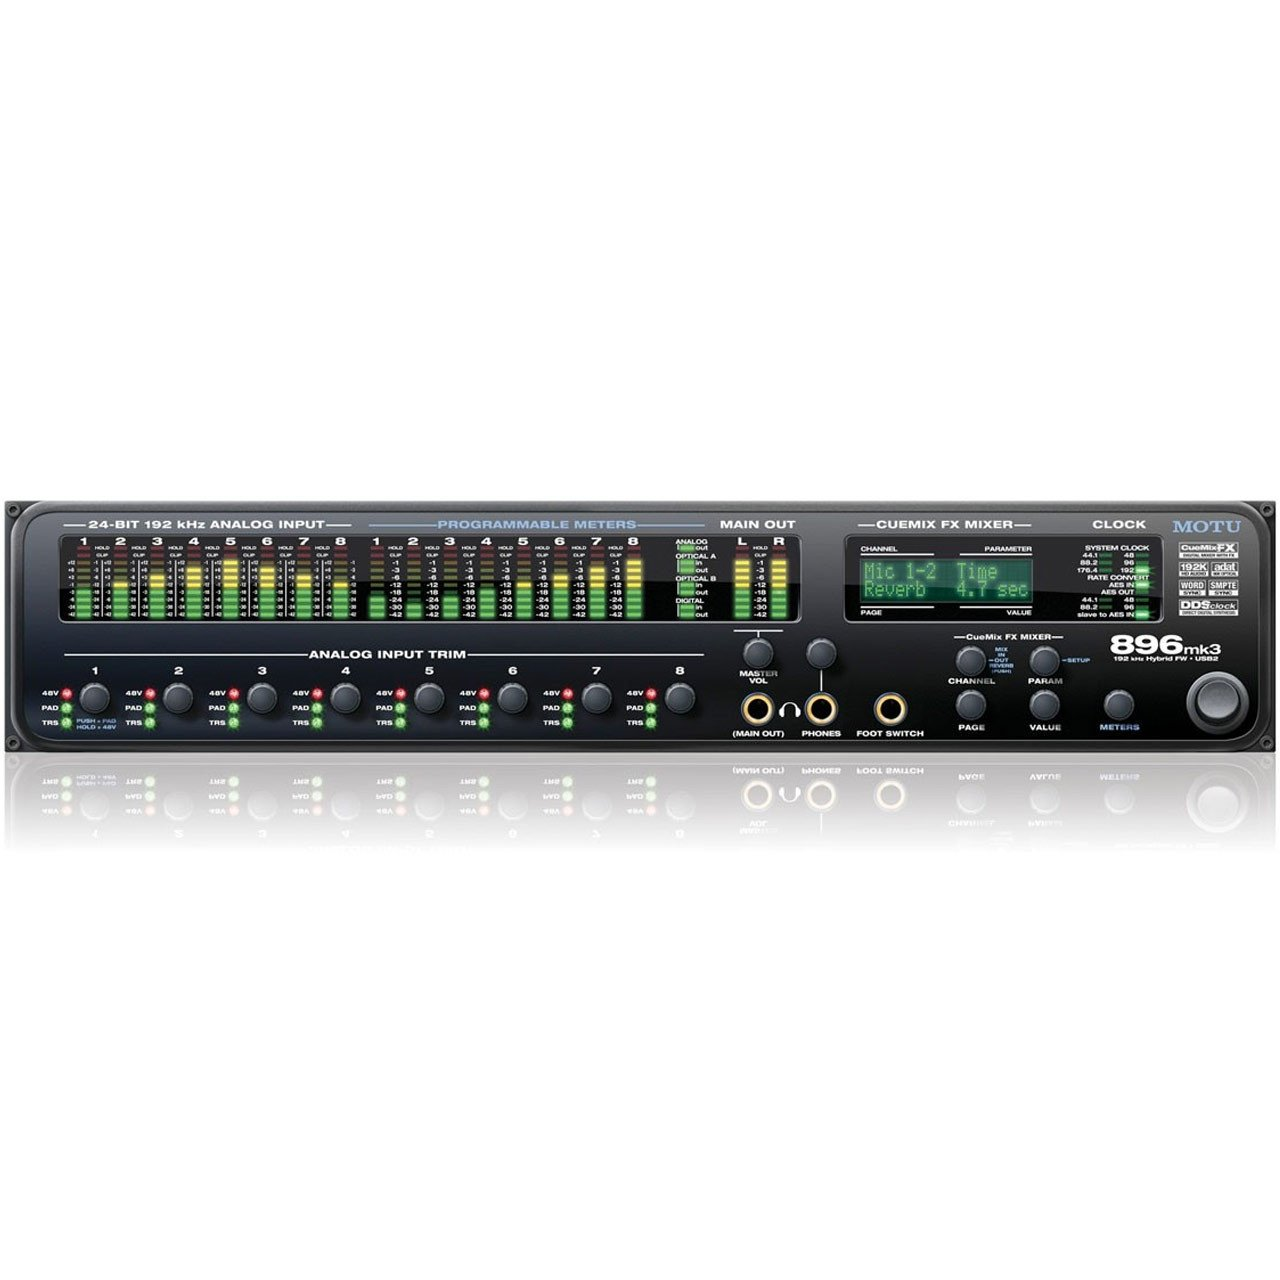 USB Audio Interfaces - MOTU 896mk3 Hybrid - USB & Firewire Audio Interface